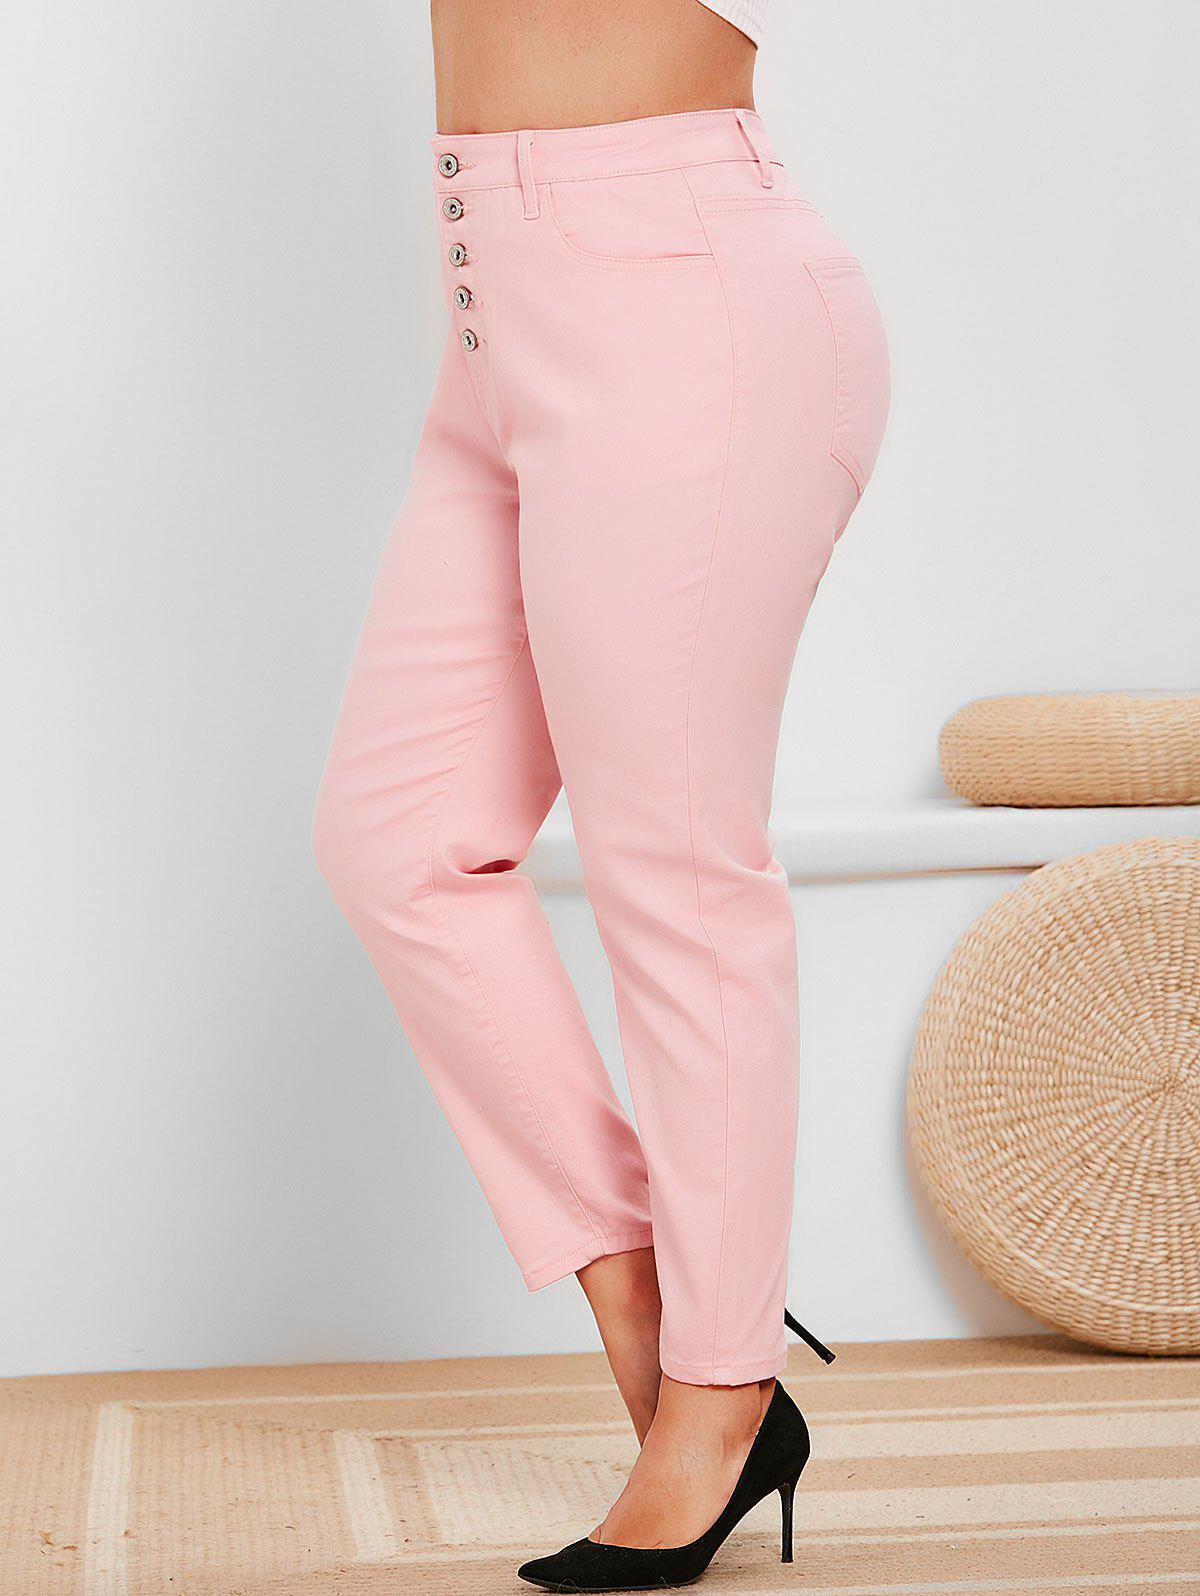 Plus Size High Rise Button Fly Colored Jeans - LIGHT PINK 5X